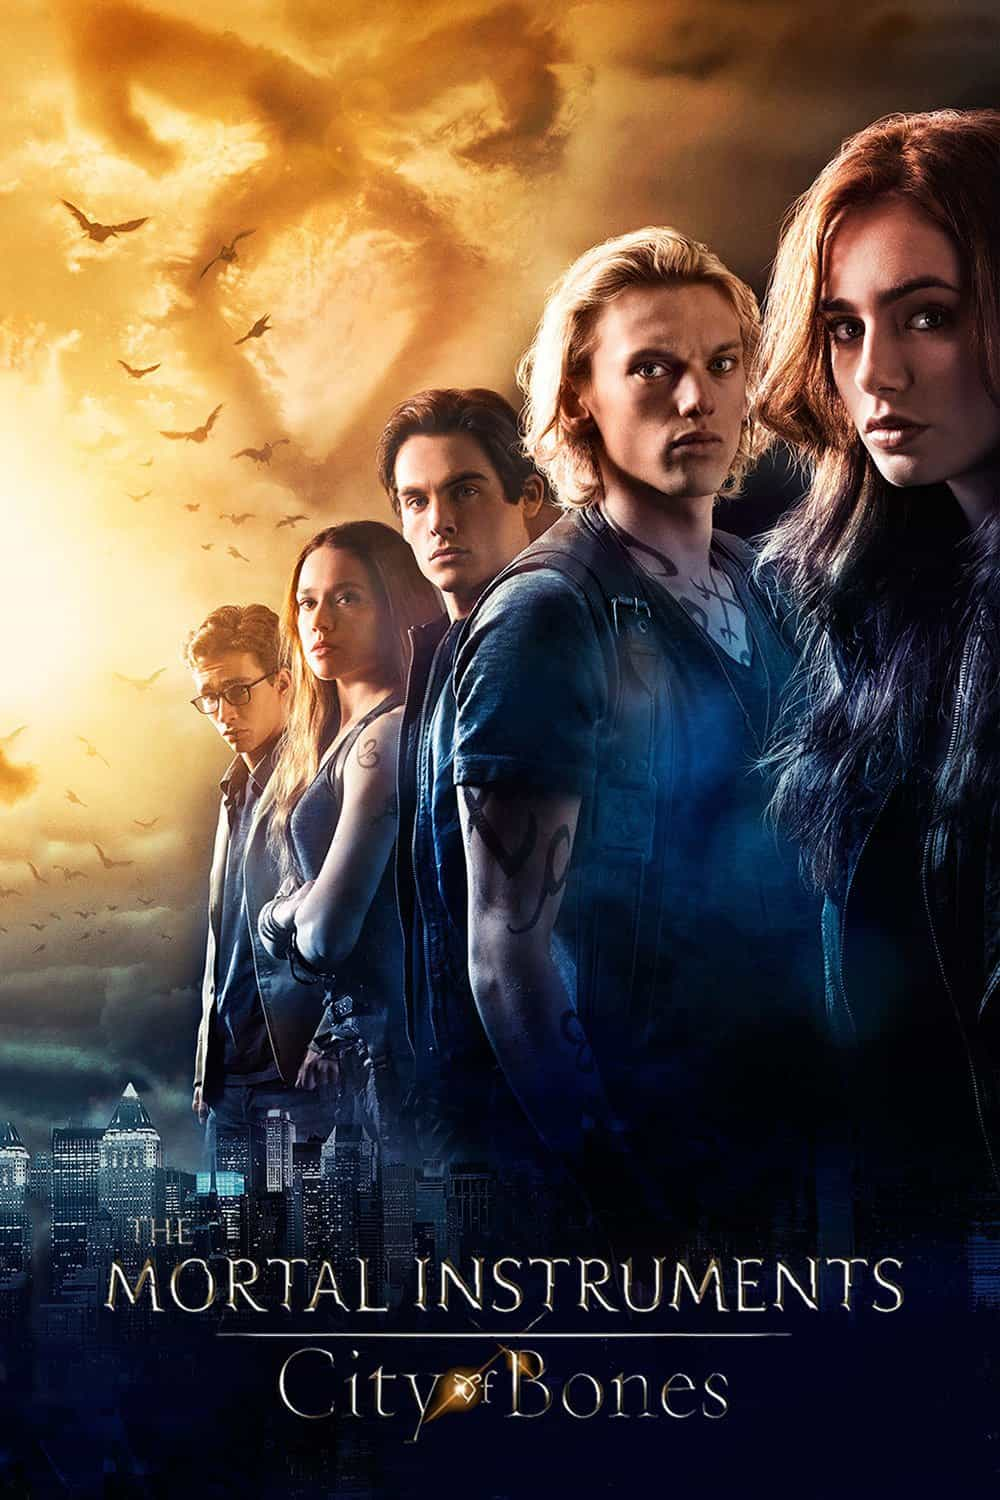 The Mortal Instruments: City of Bones, 2013